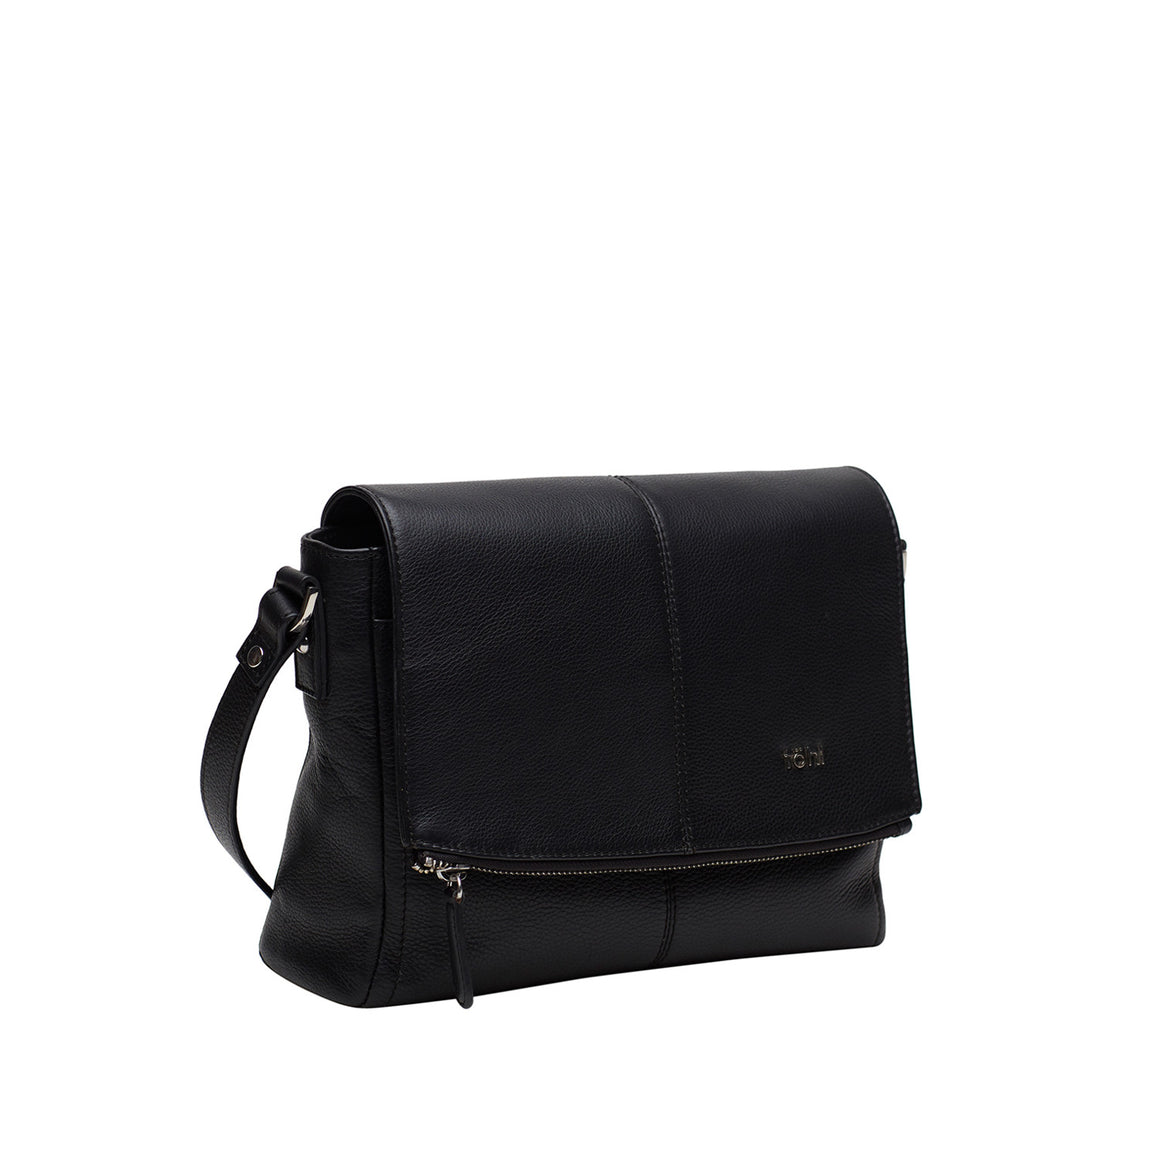 SG 0002 - TOHL MONROE WOMEN'S SLING BAG - CHARCOAL BLACK